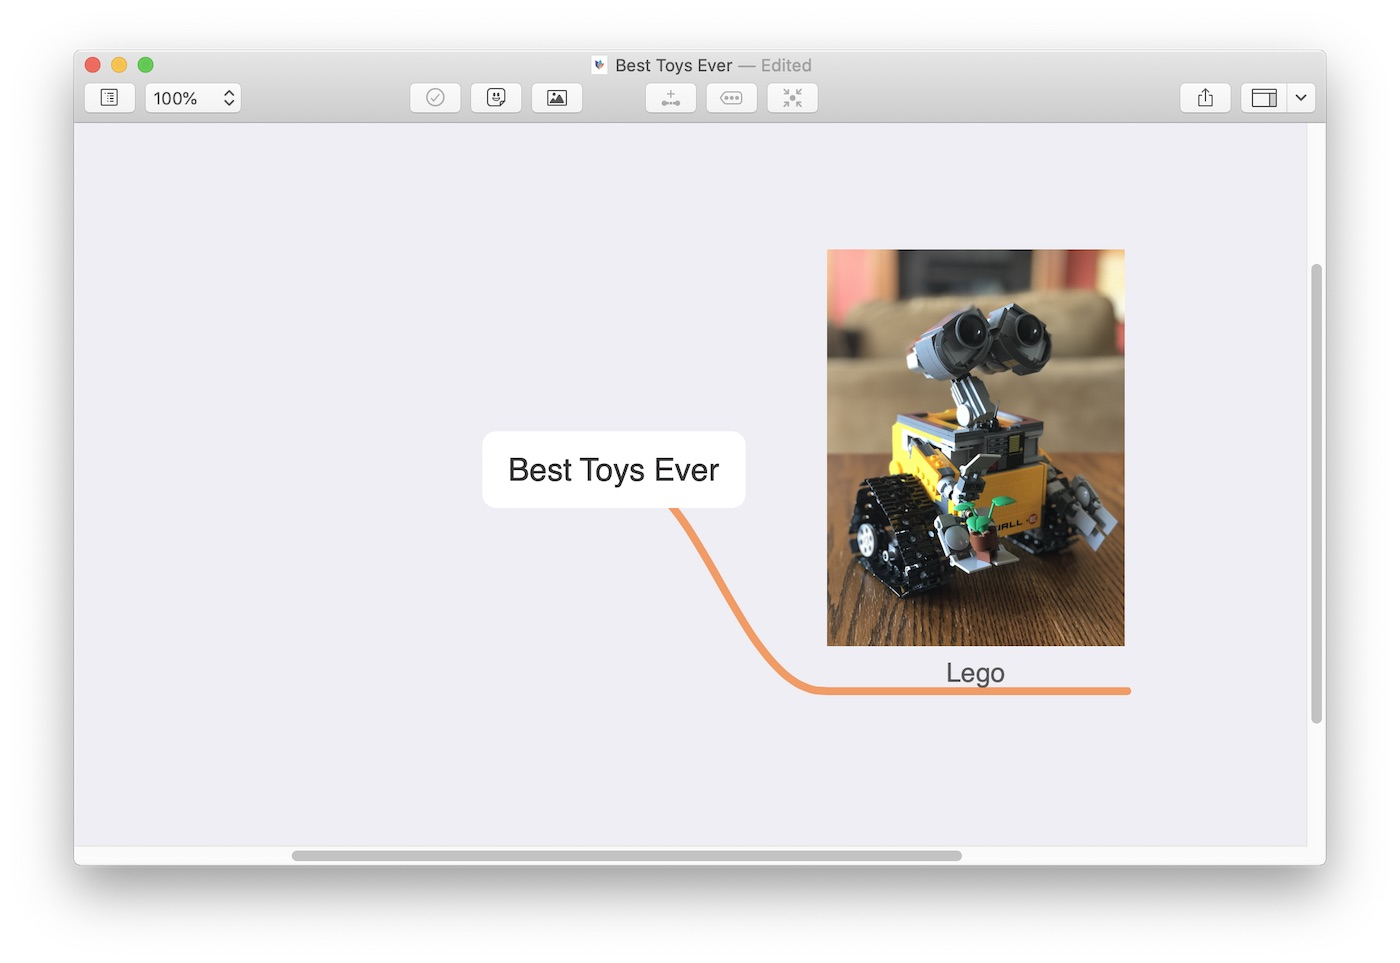 Attaching an image to a mind map in MindNode